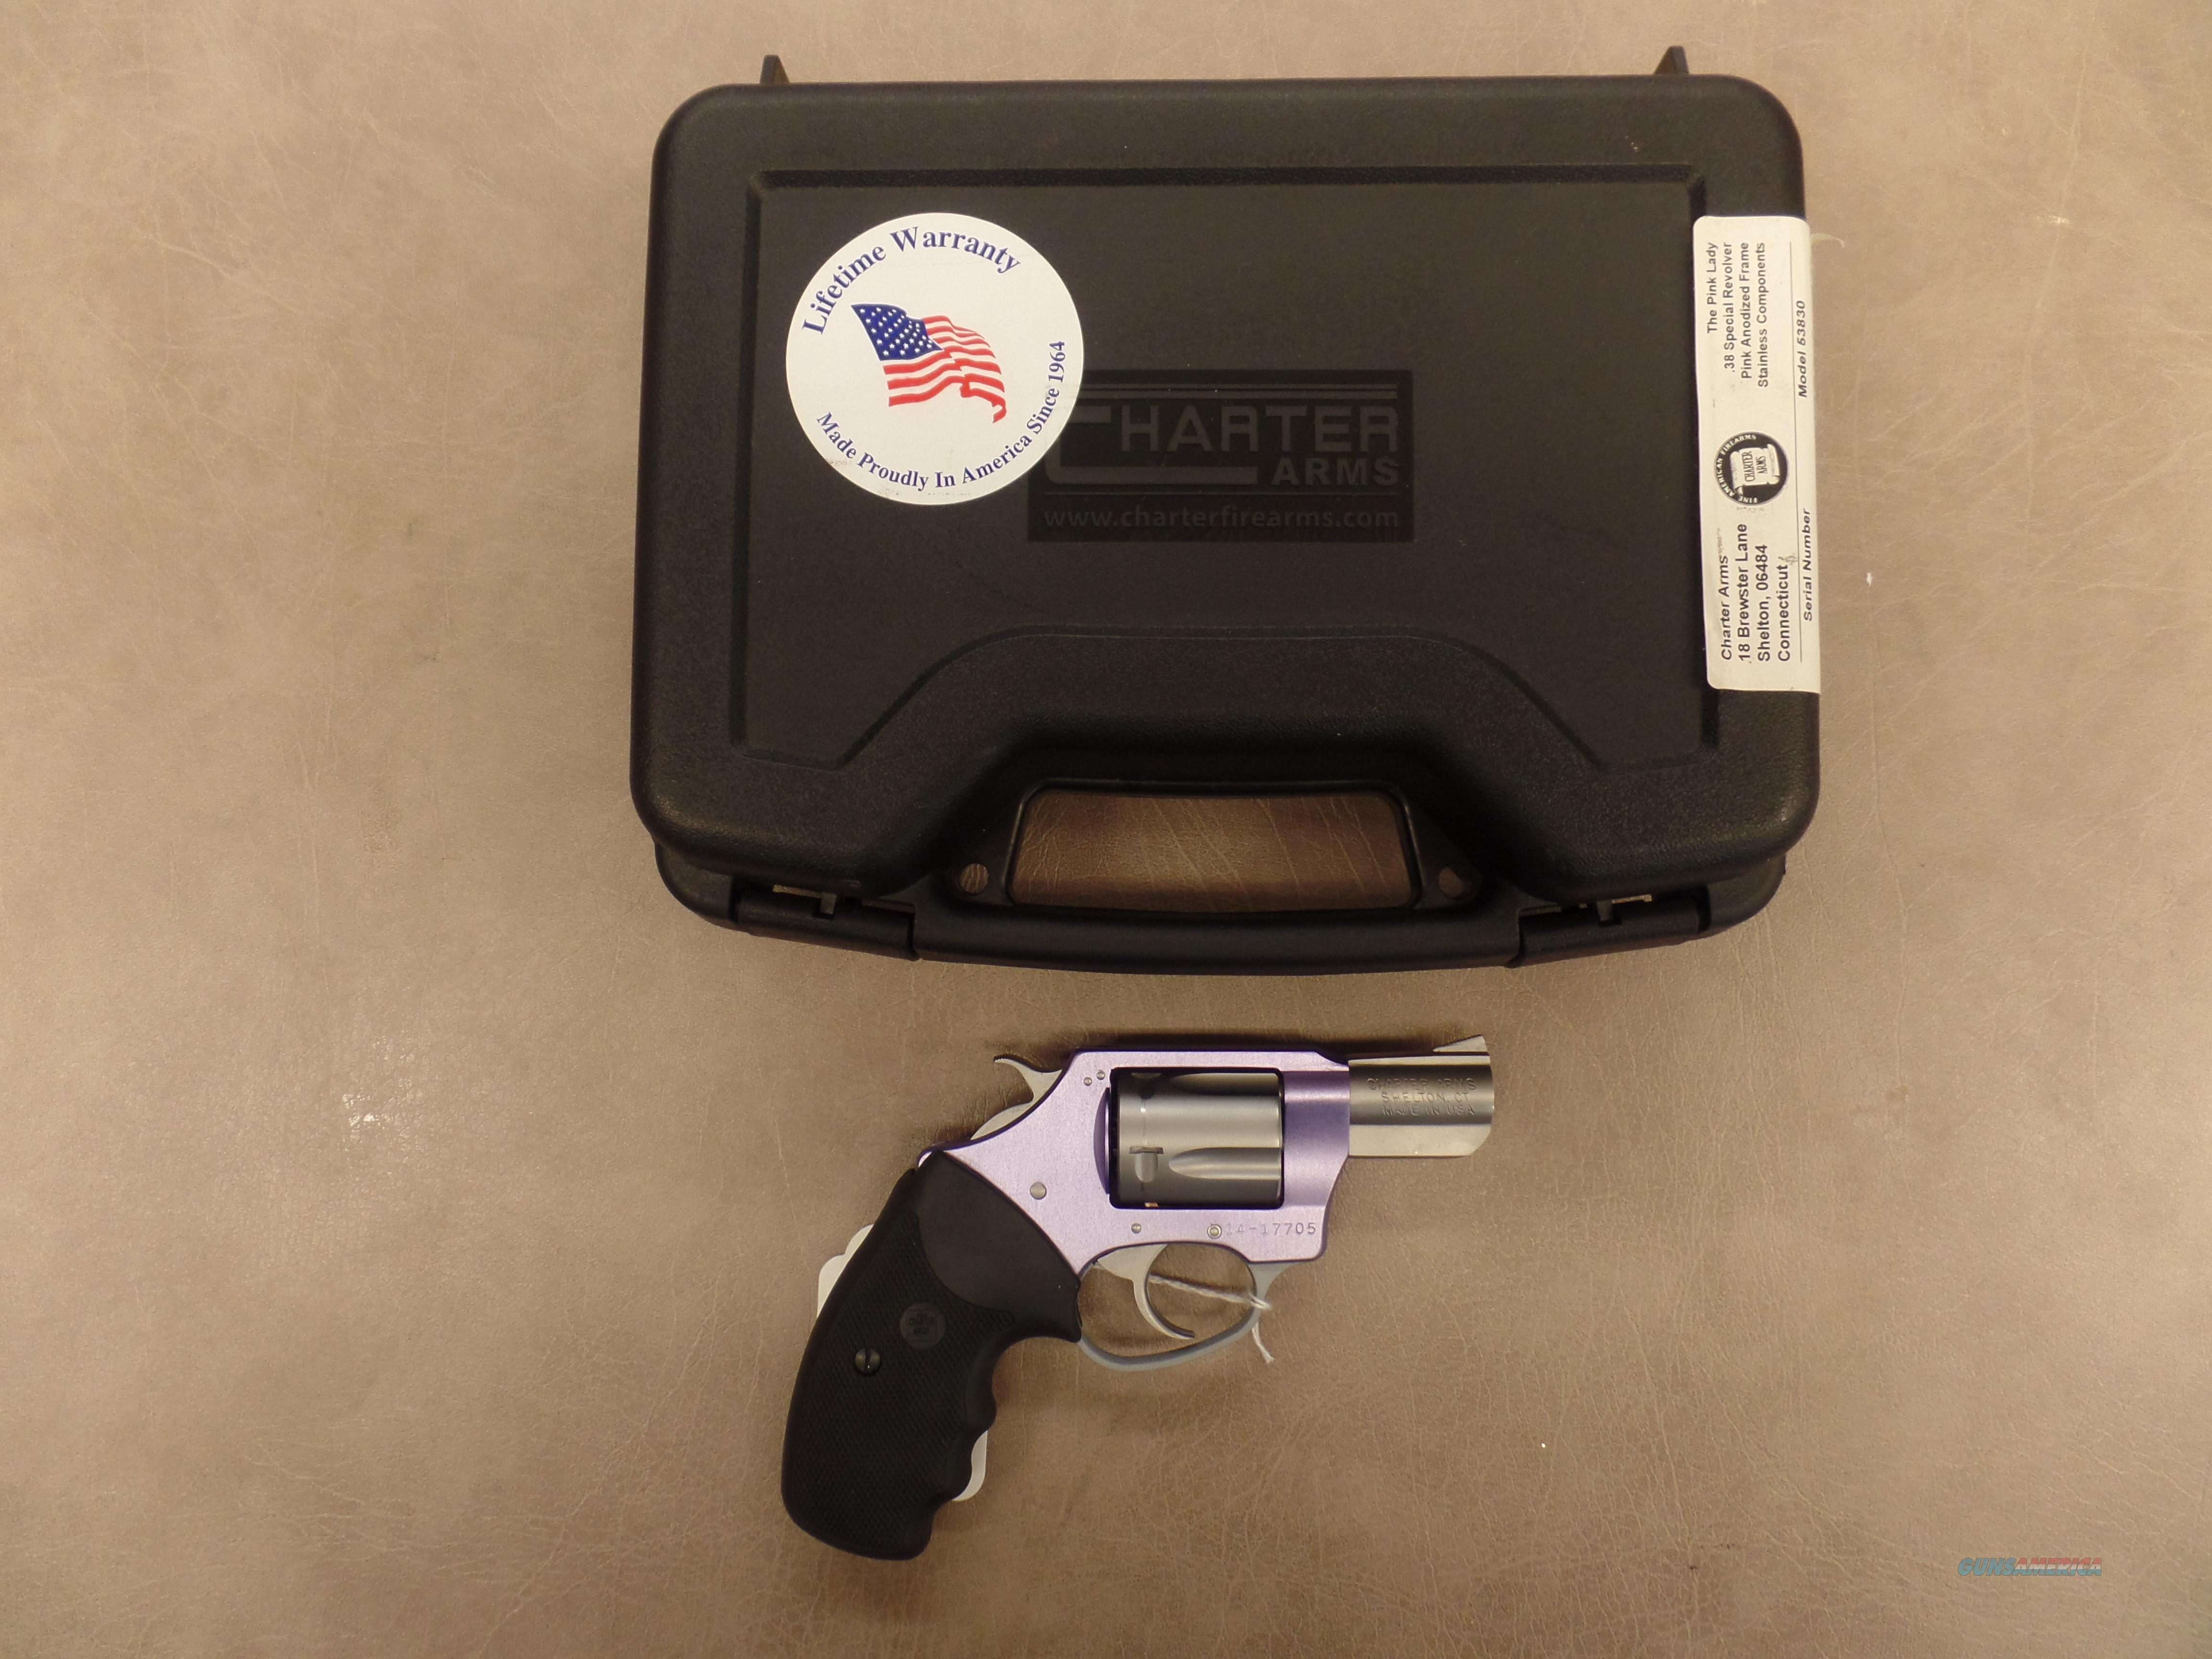 Charter Arms Under Cover Lavender Lady  Guns > Pistols > Charter Arms Revolvers